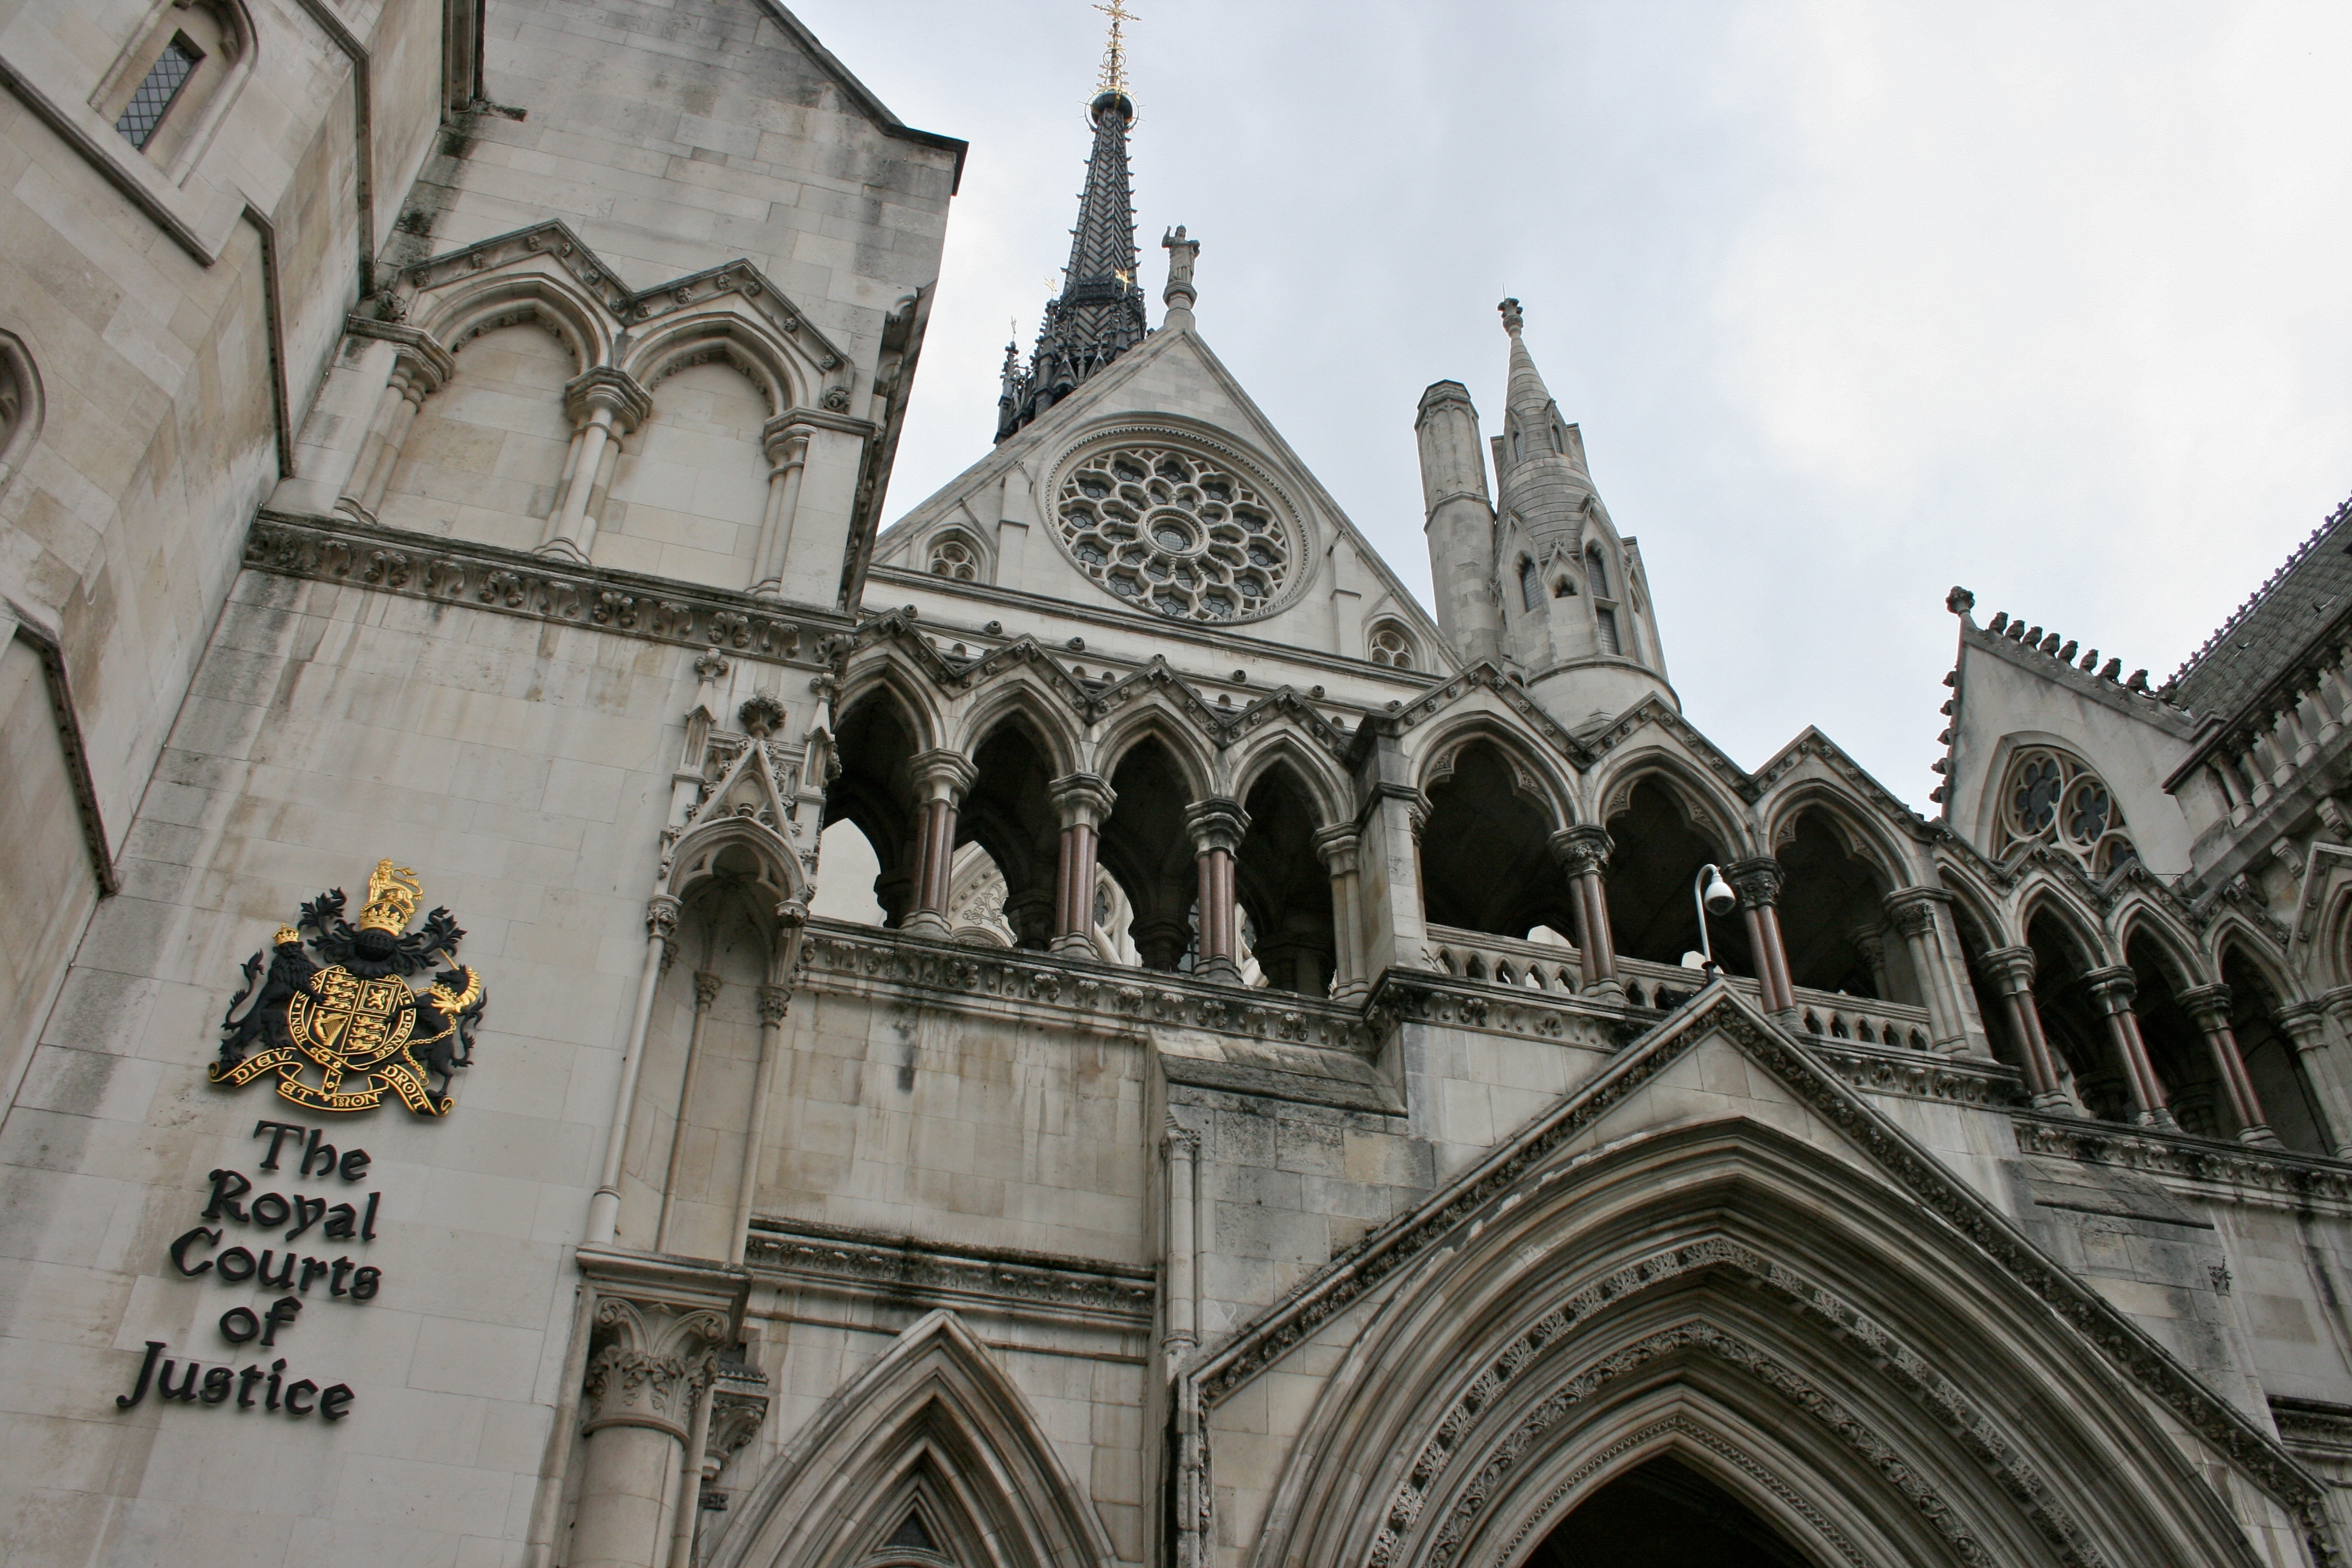 The_Royal_Courts_of_Justice